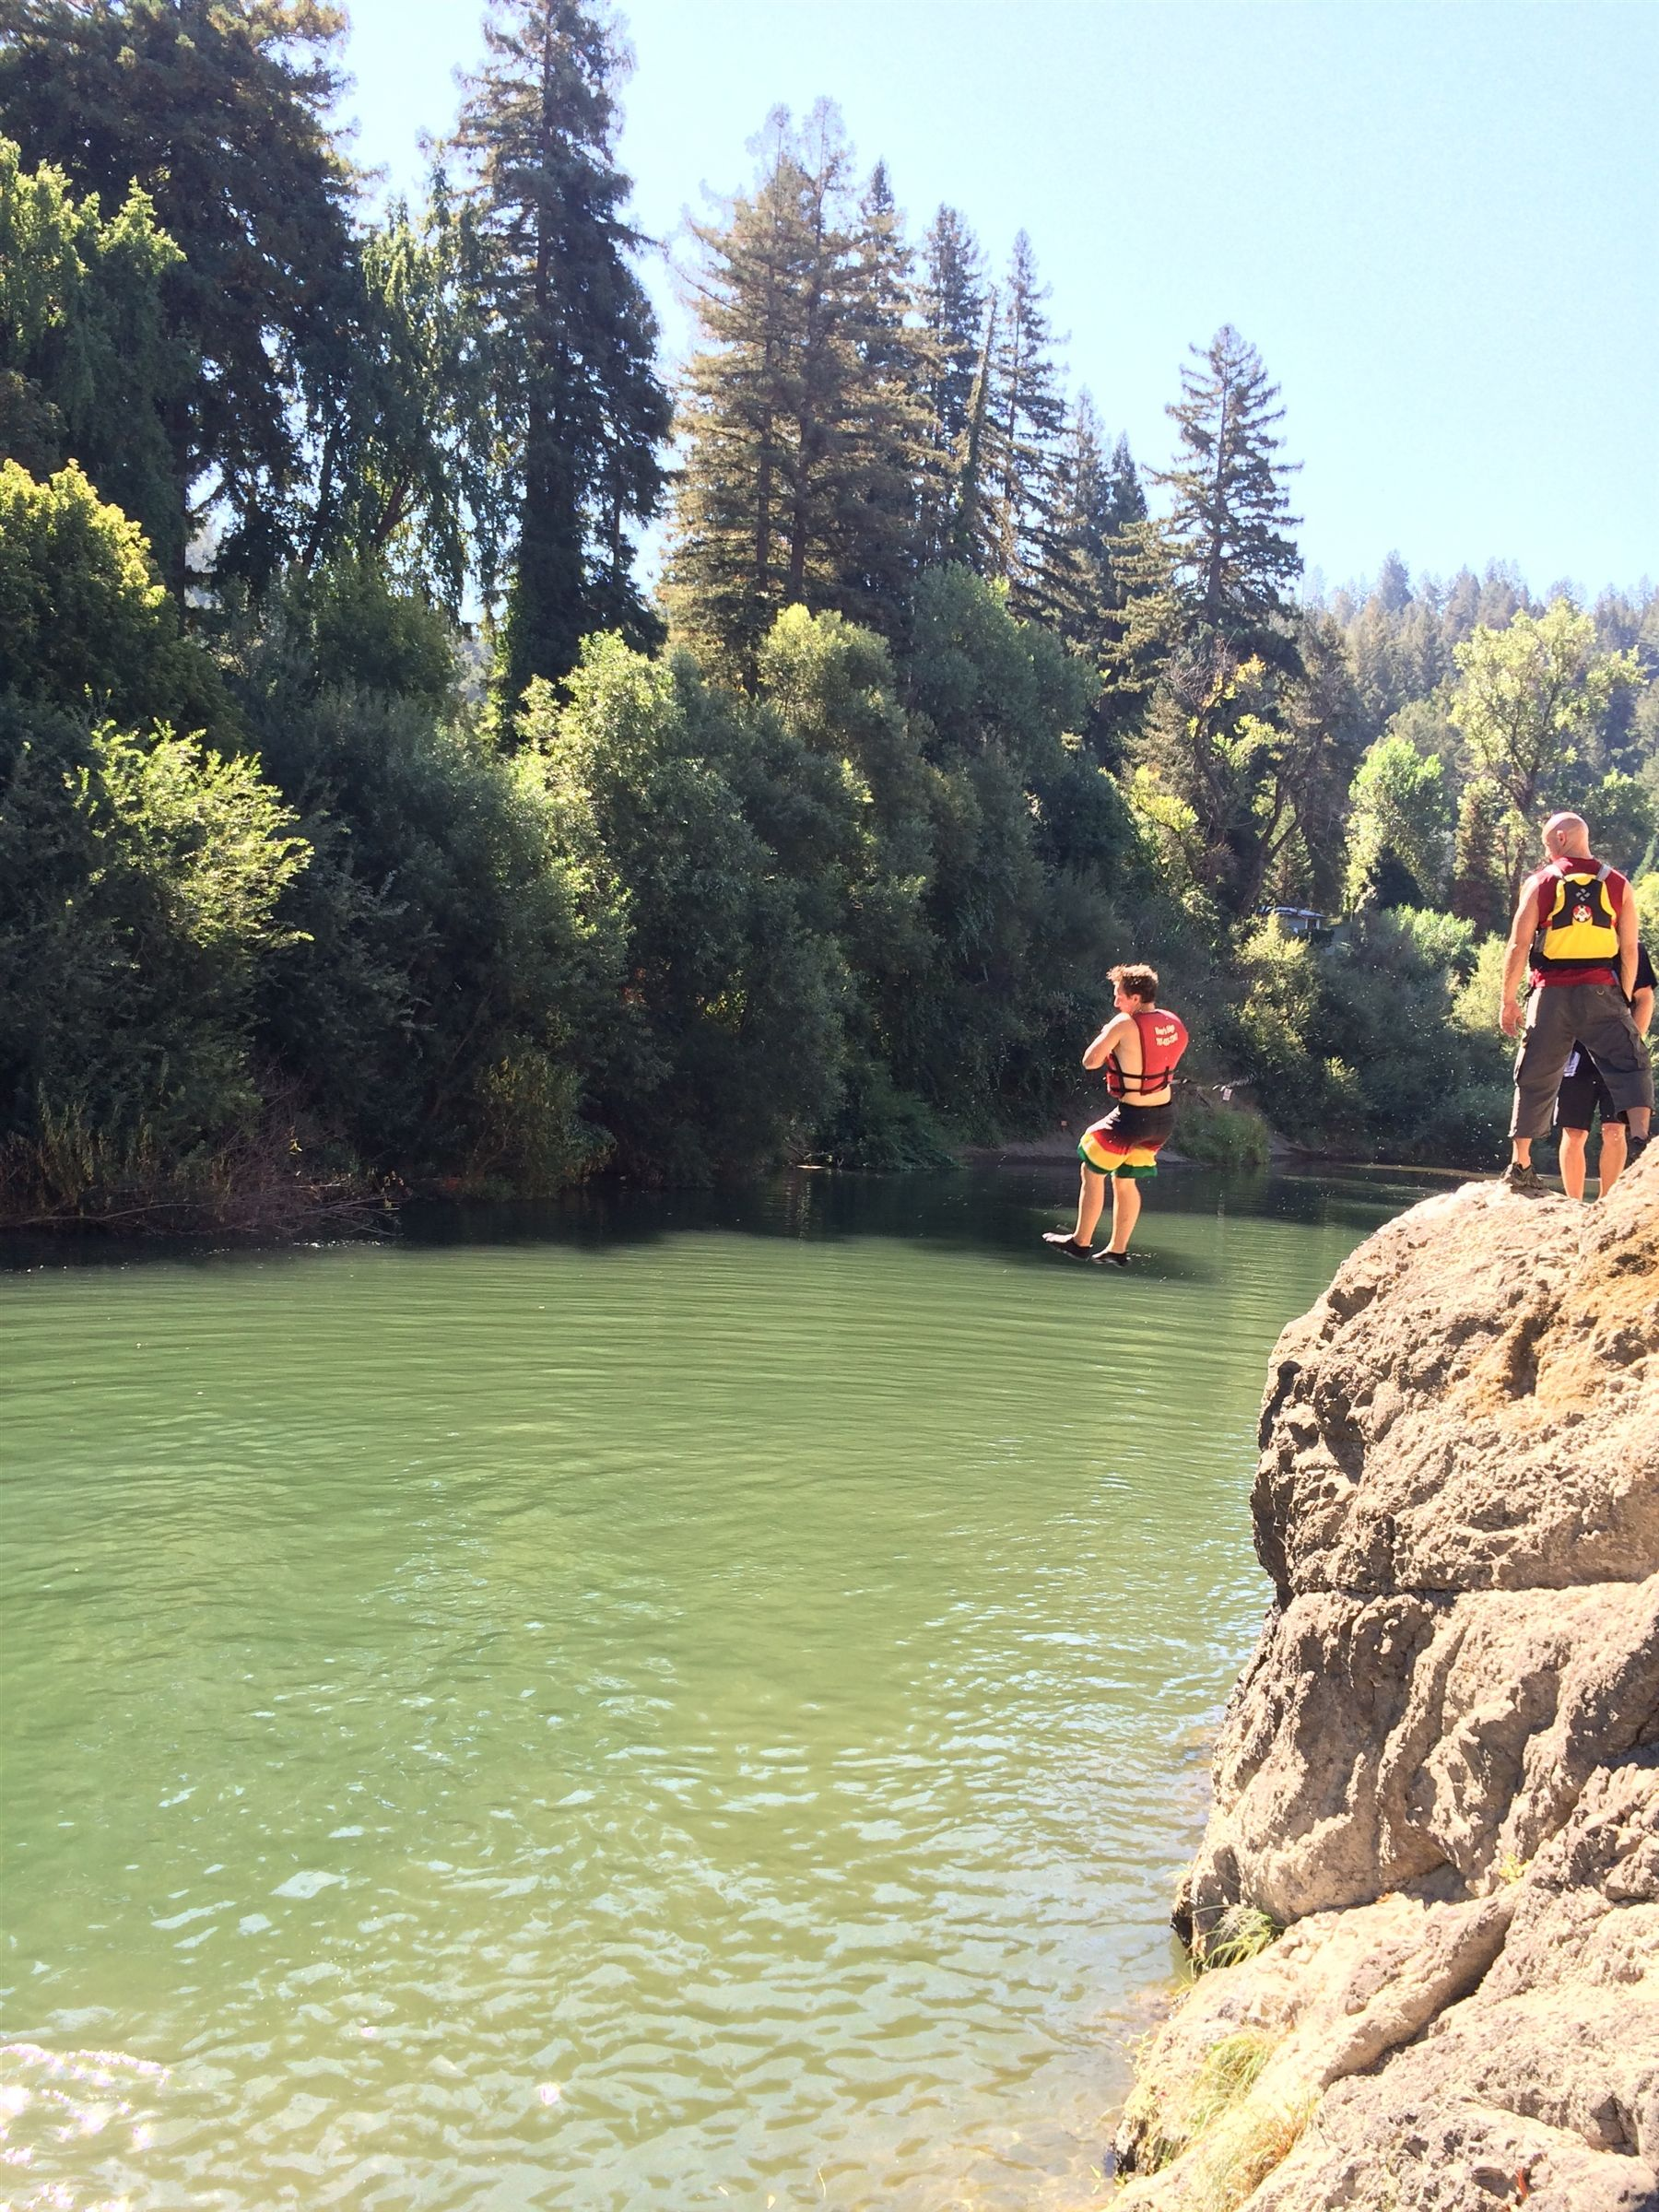 Jumping into the Russian River on the junior Outdoor Education trip!